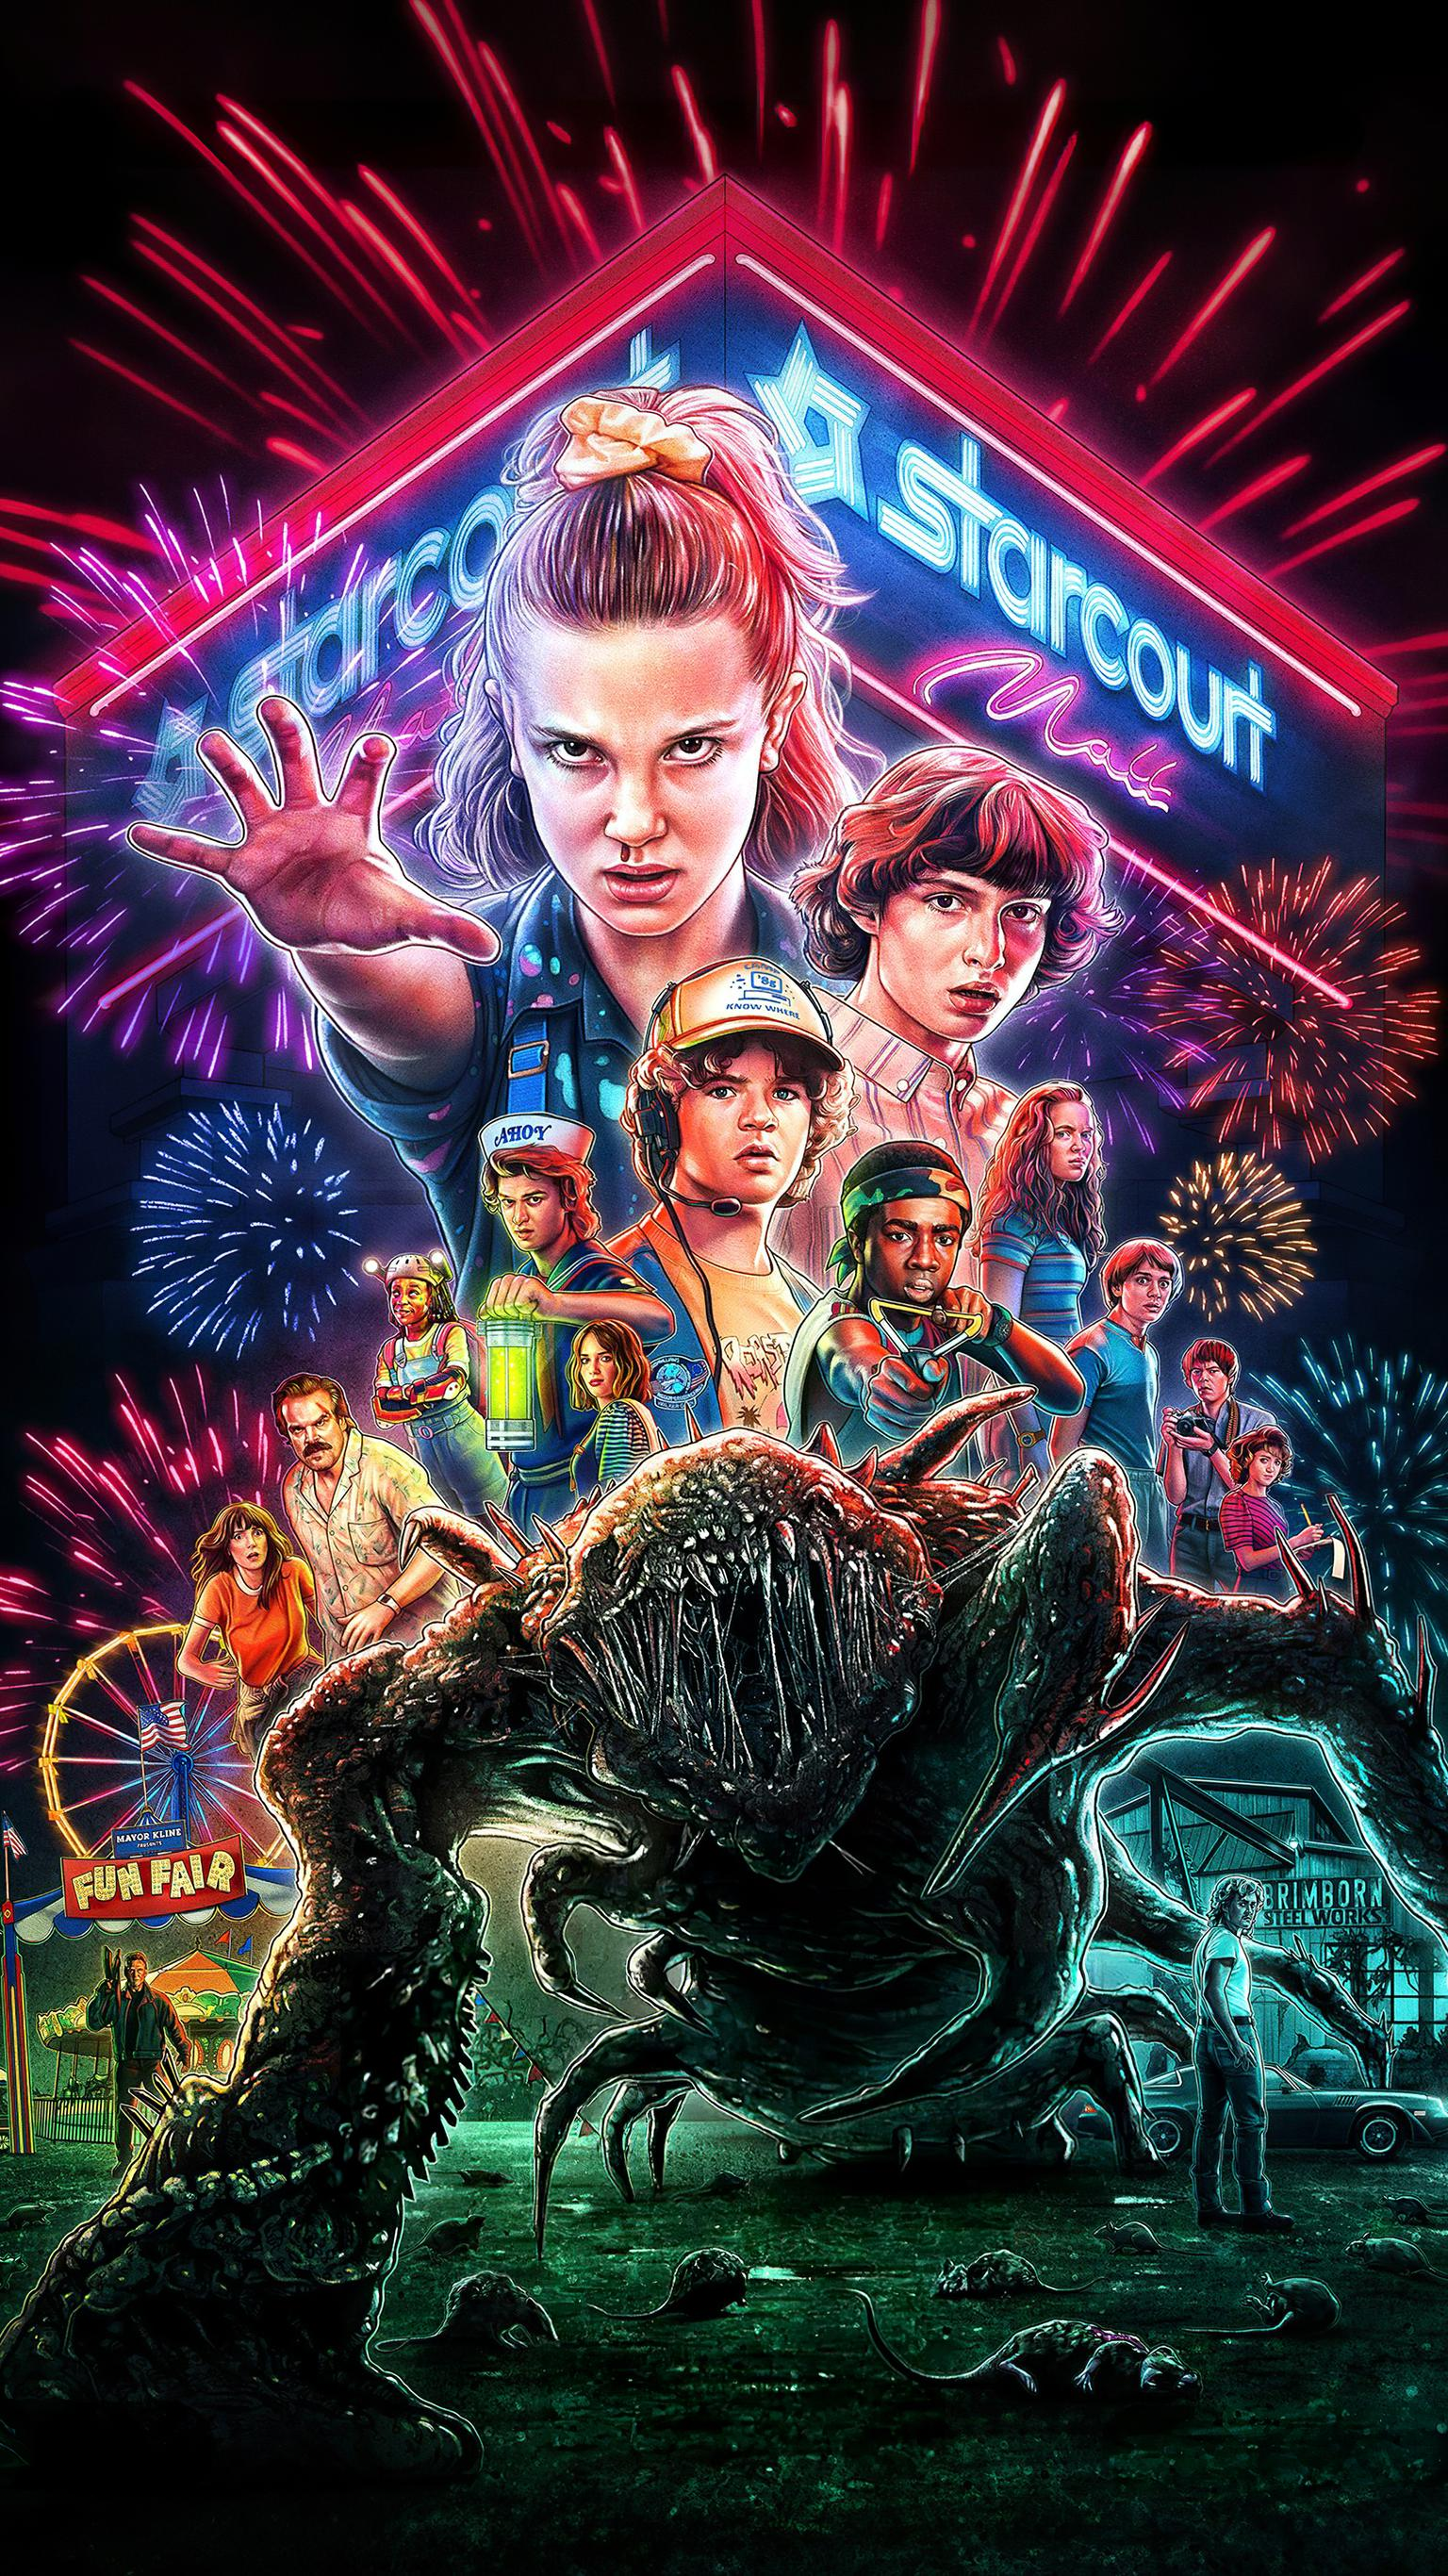 Max Stranger Things Wallpapers Top Free Max Stranger Things